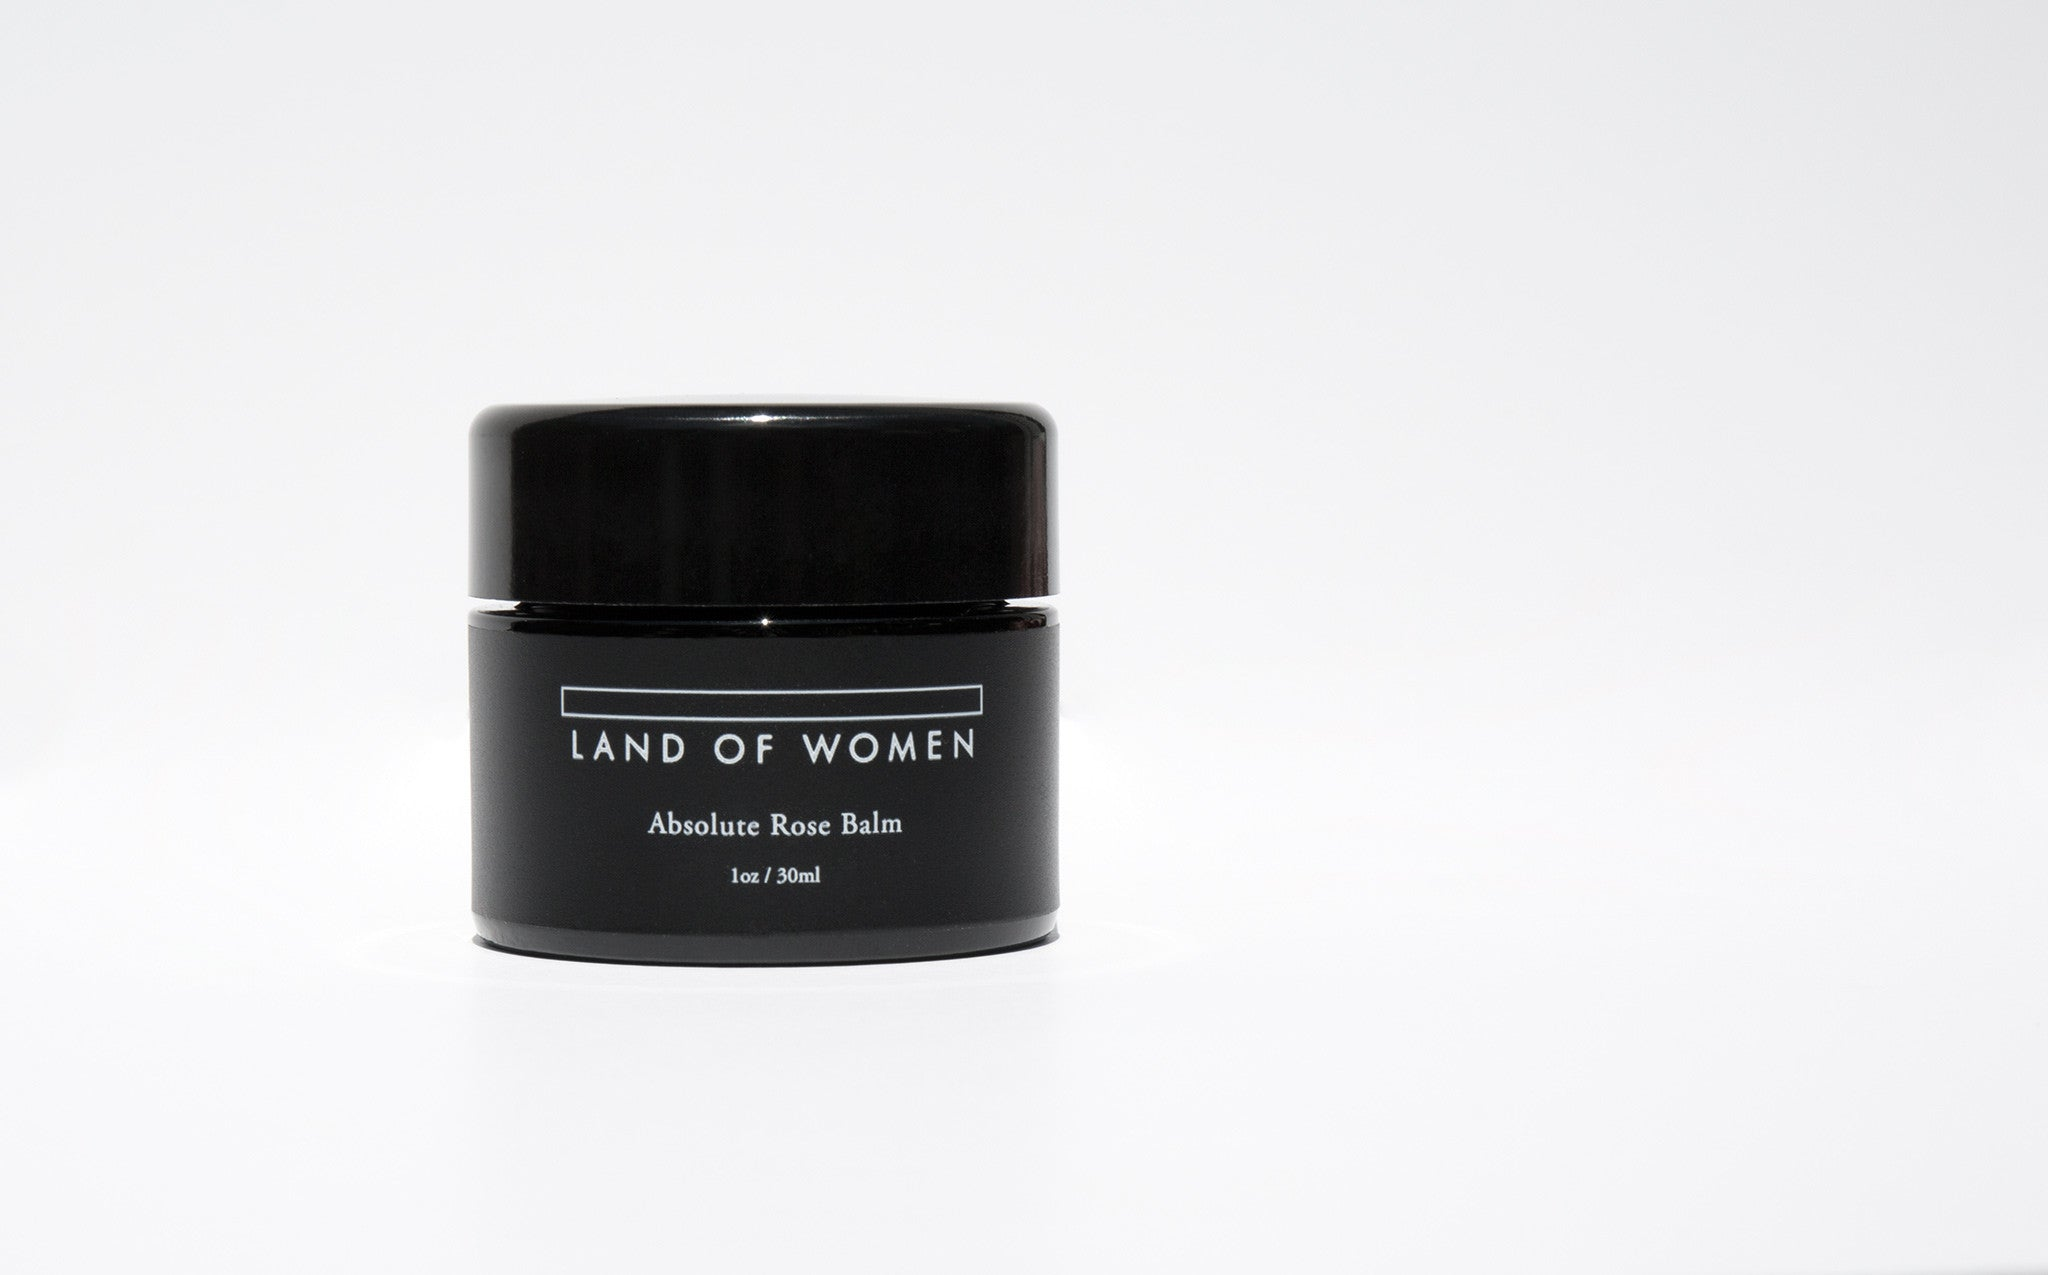 Land of Women Absolute Rose Balm